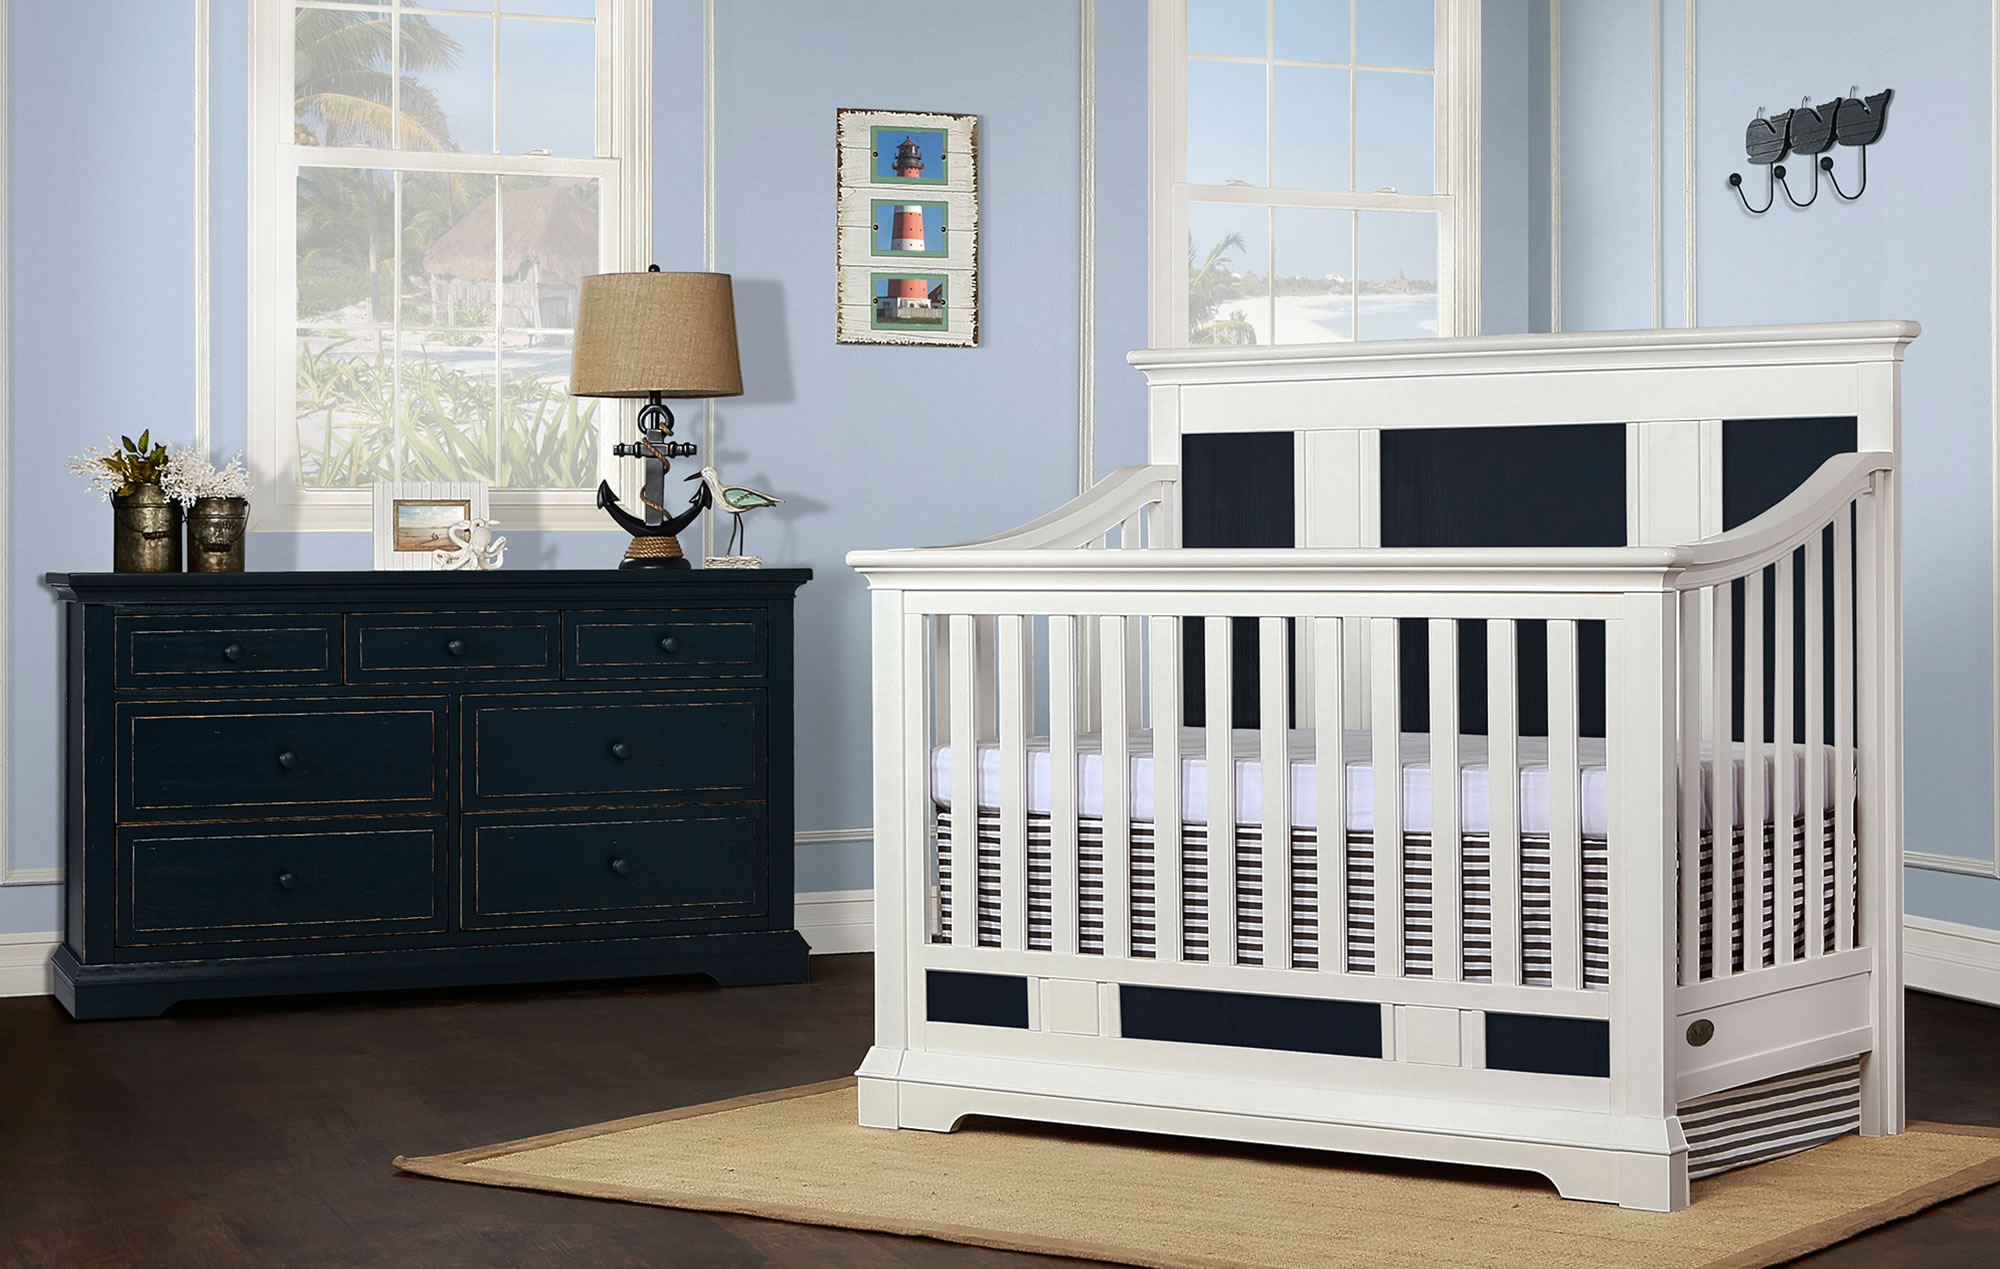 842-WDN Evolur Parker Convertible Crib RS2